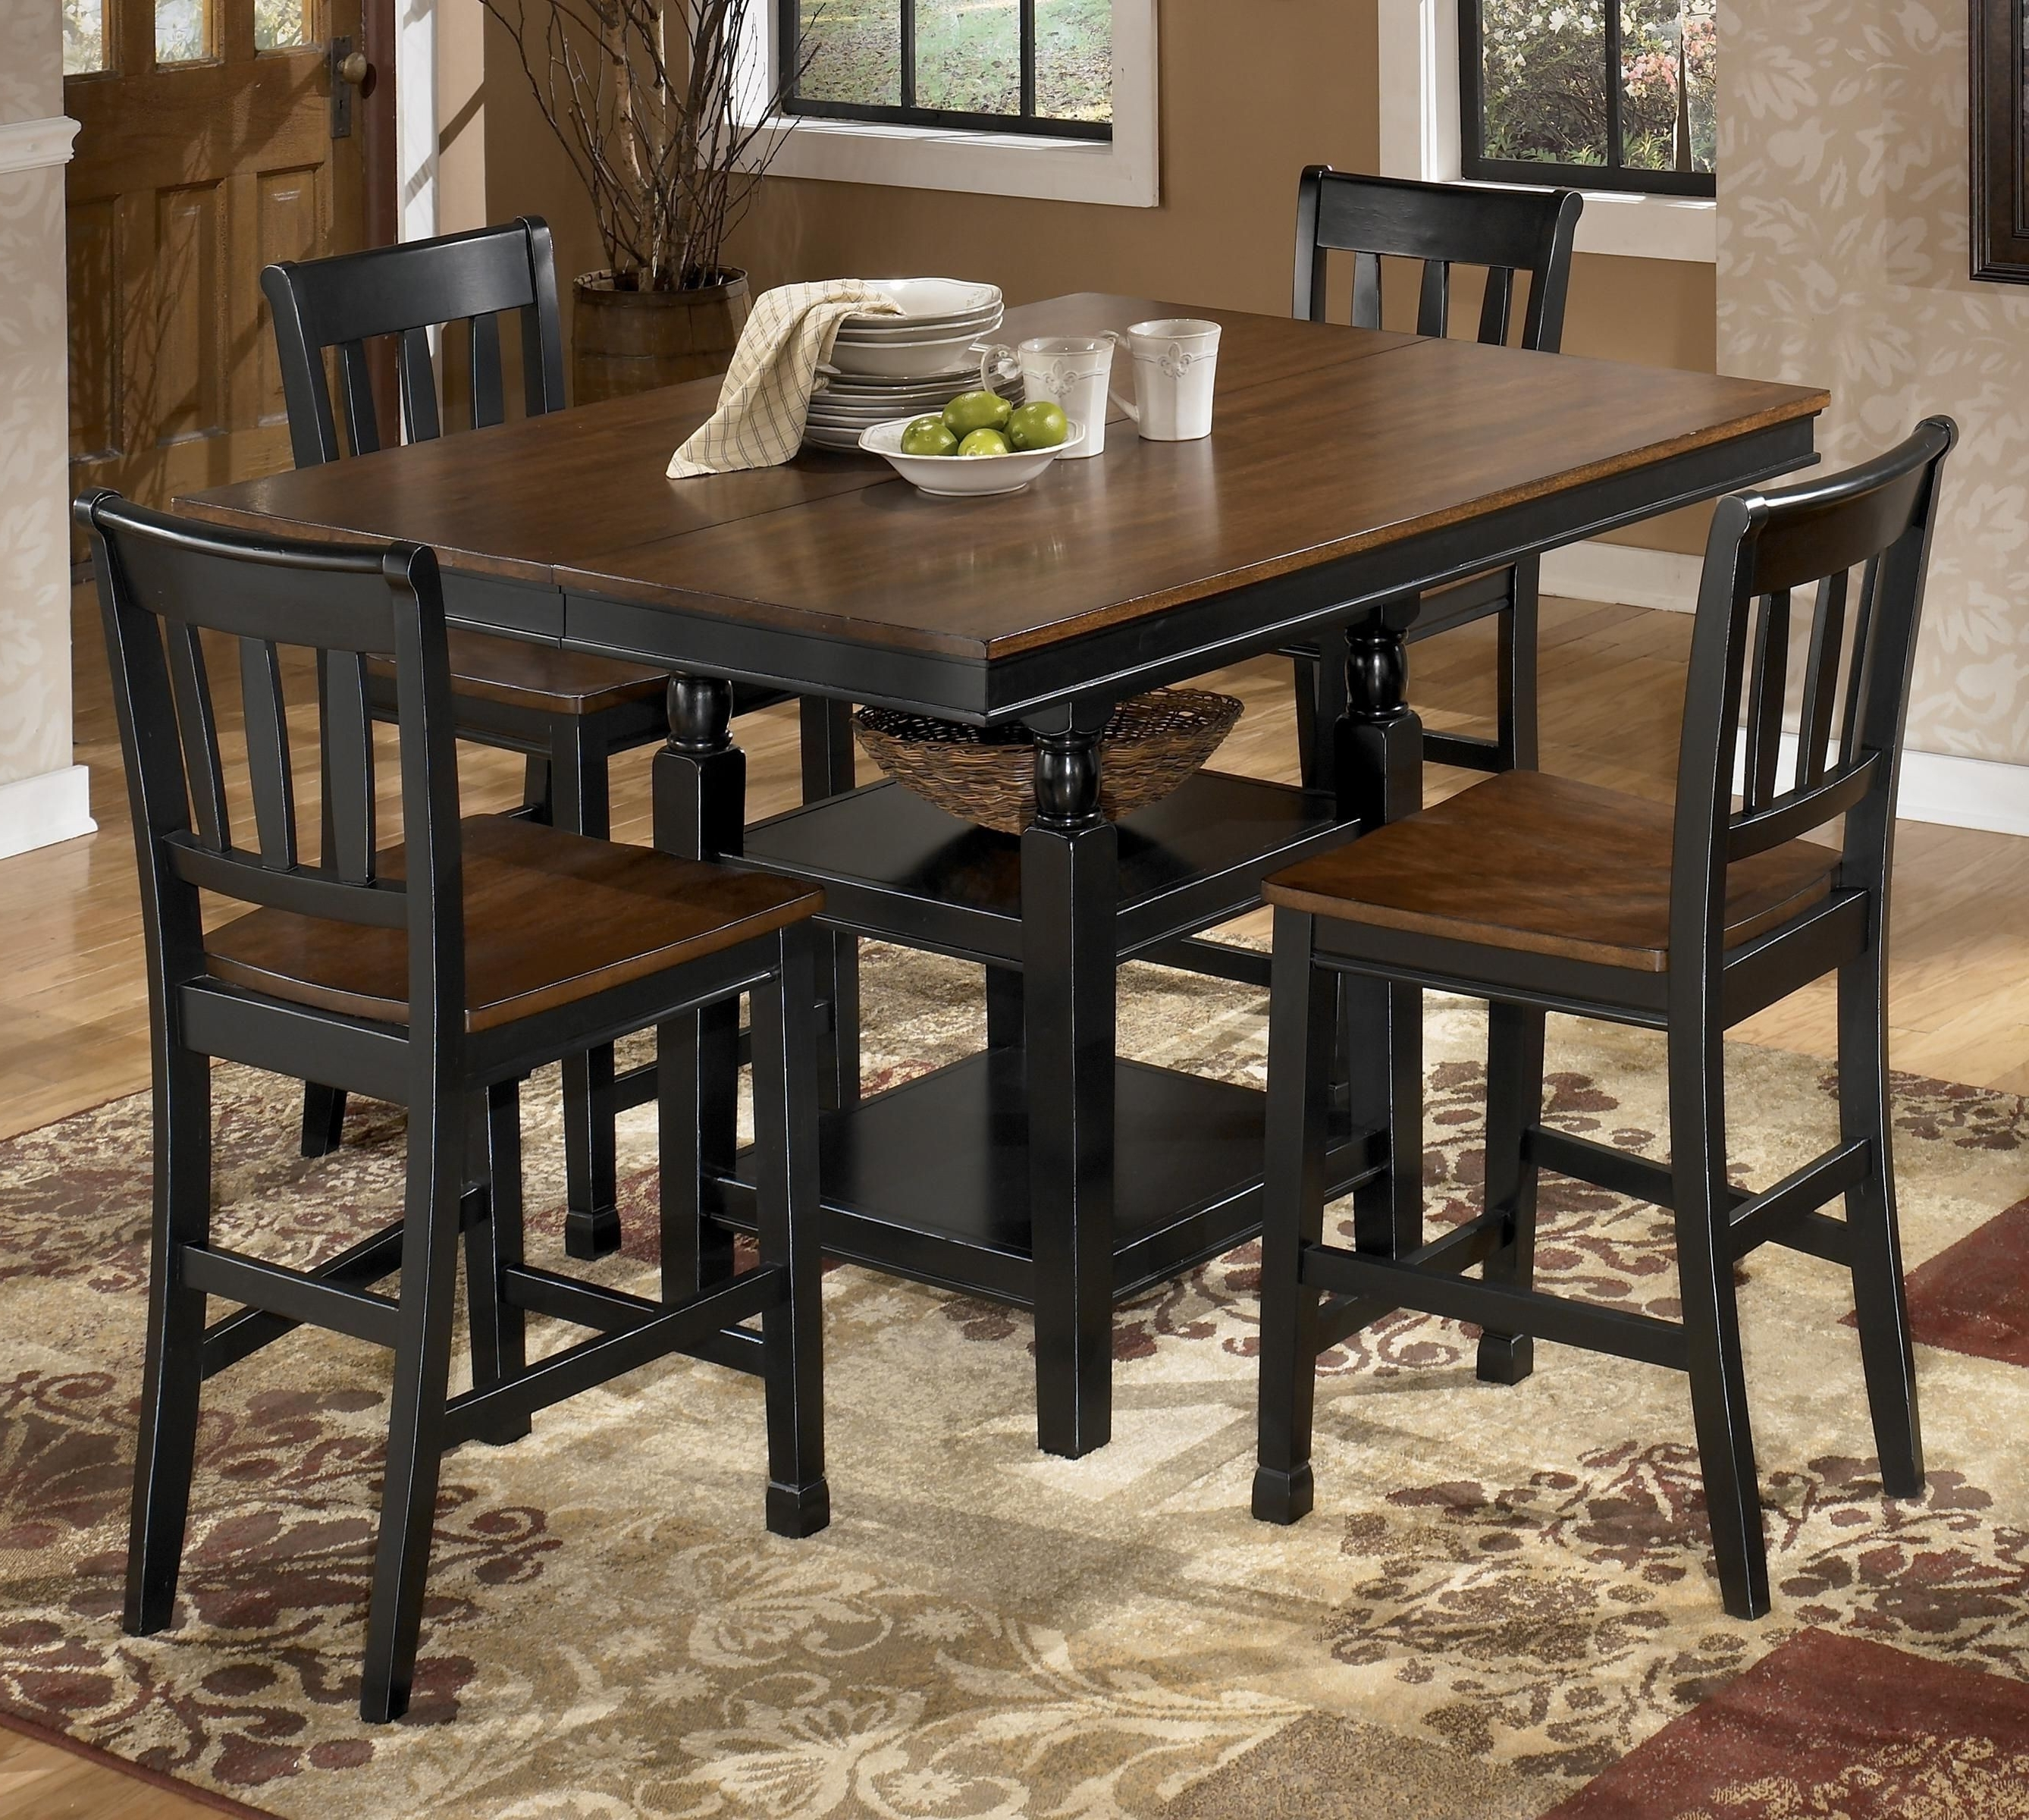 Most Current Ashton Round Pedestal Dining Table Elegant Kitchen Dining Area For Jaxon Grey 5 Piece Round Extension Dining Sets With Upholstered Chairs (View 4 of 25)